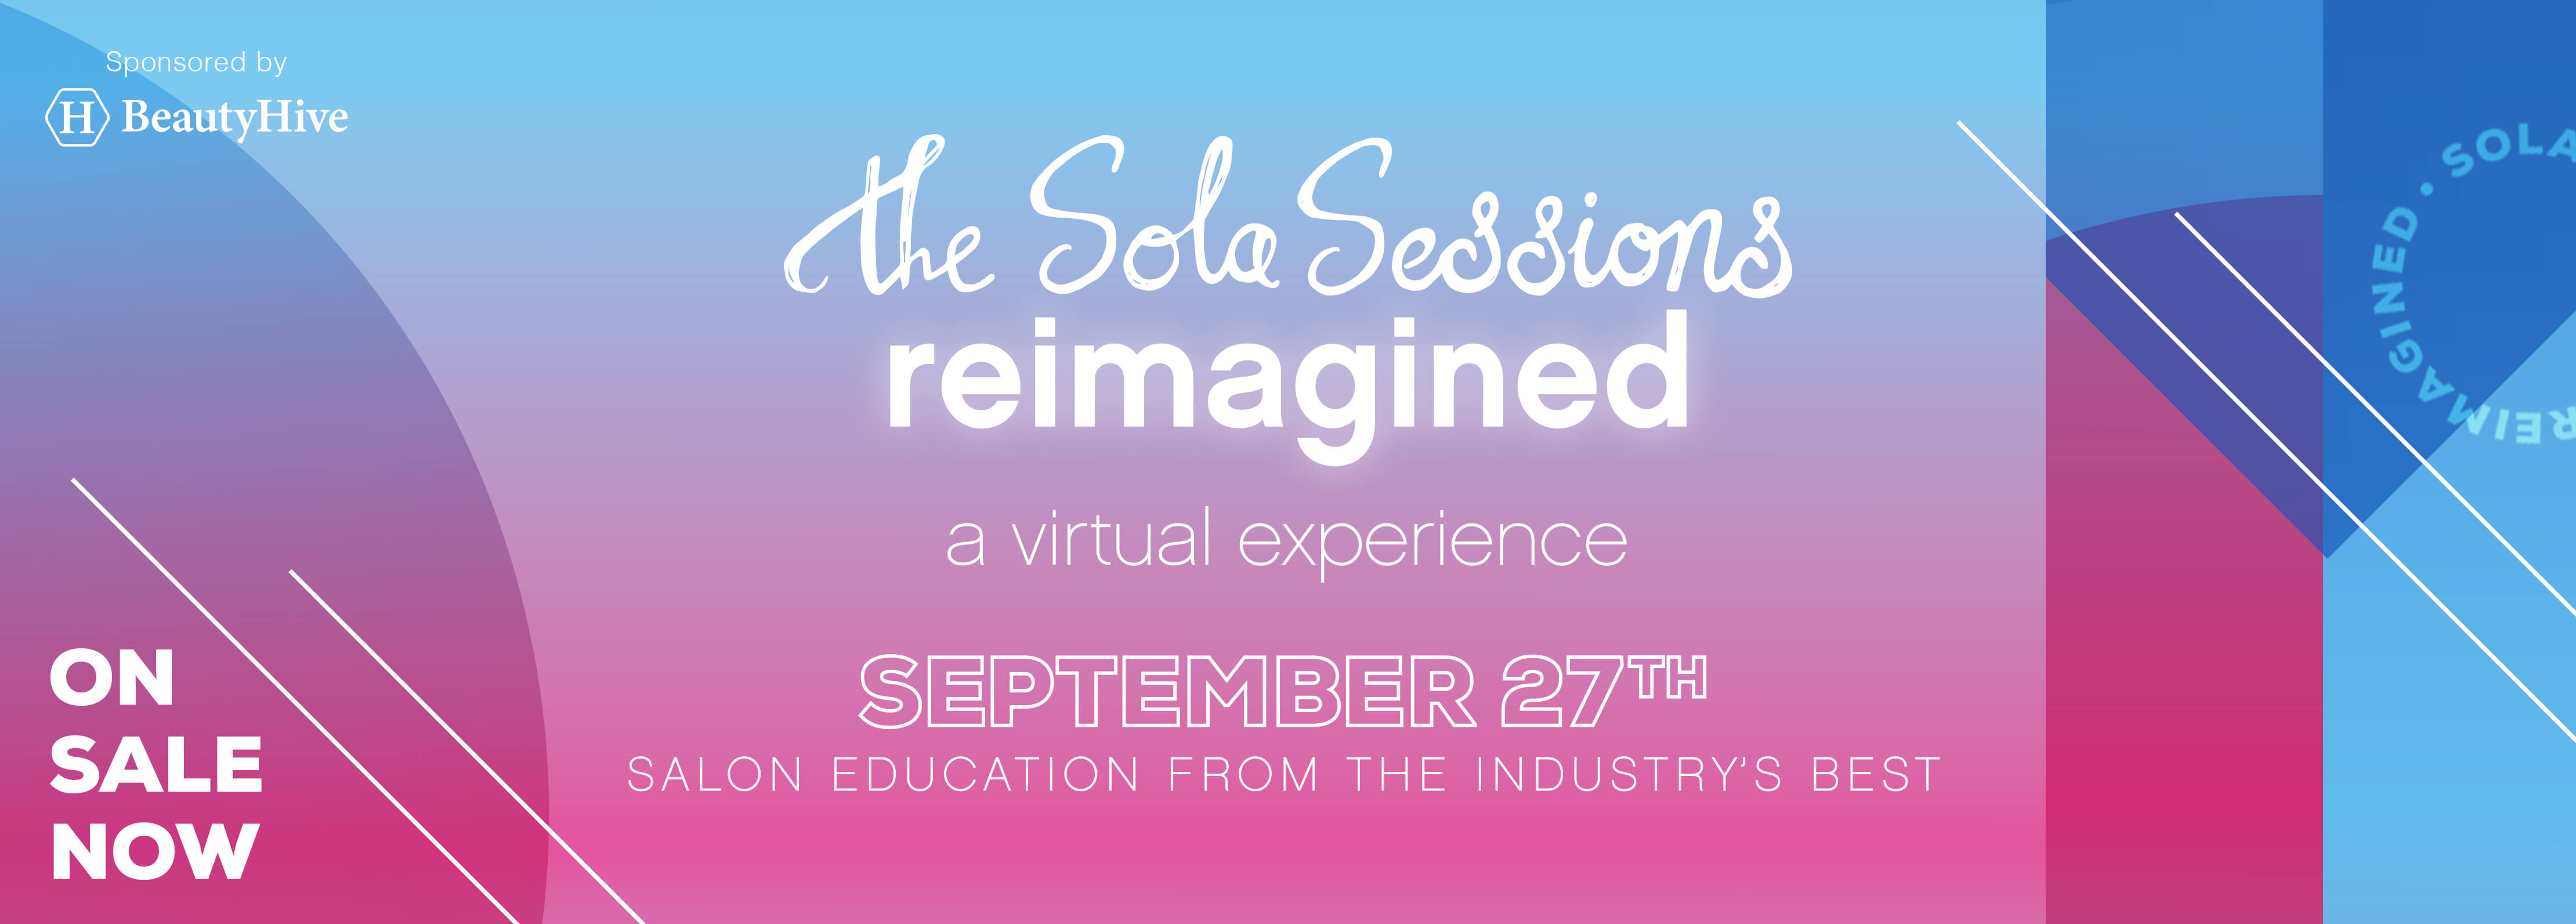 The Sola Sessions reimagined a virtual experience. Monday, September 27th. Education from the industry's best.